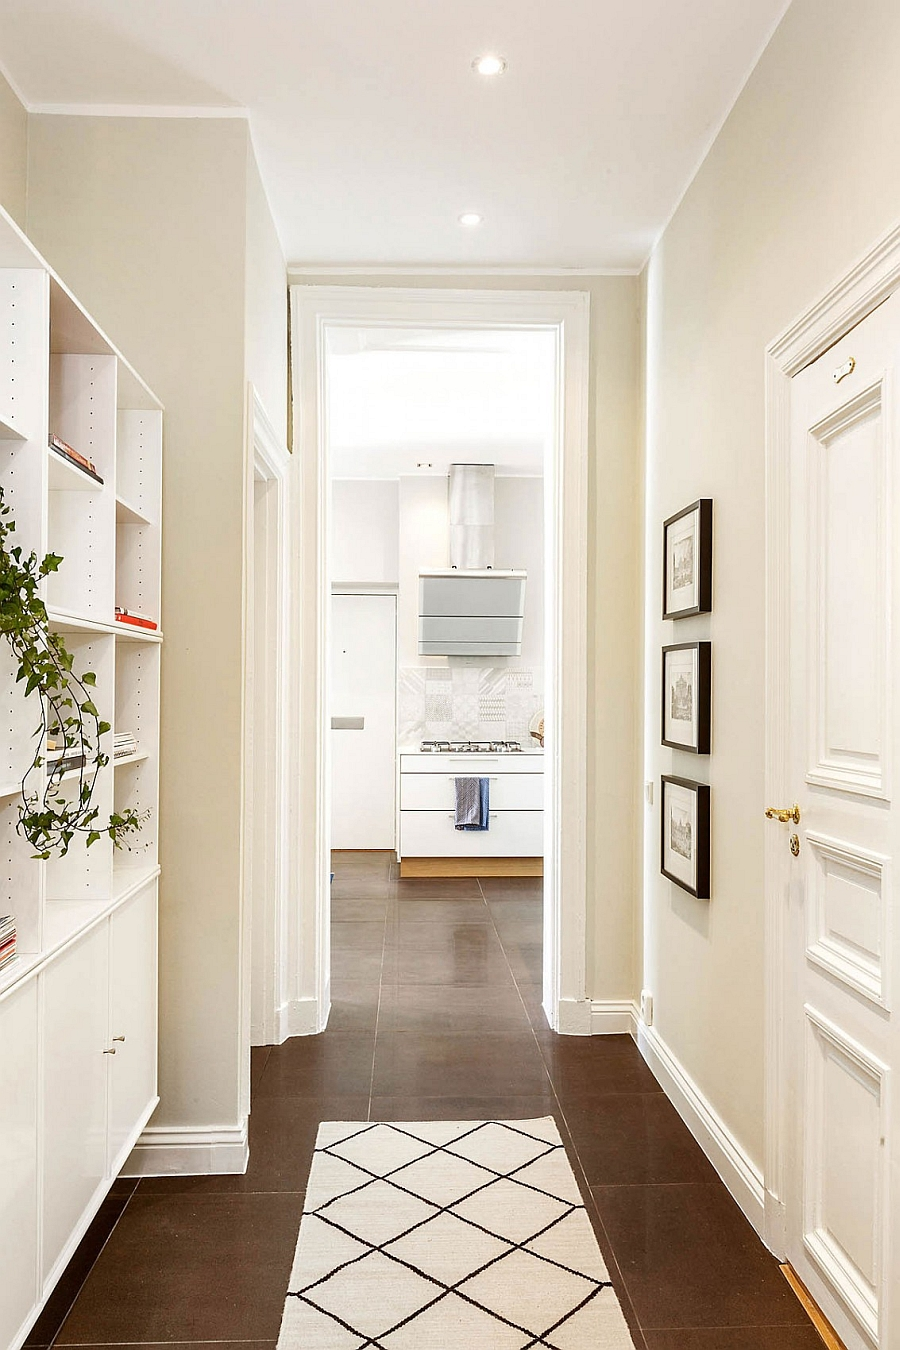 A change in flooring can be used to demarcate different areas in a subtle fashion